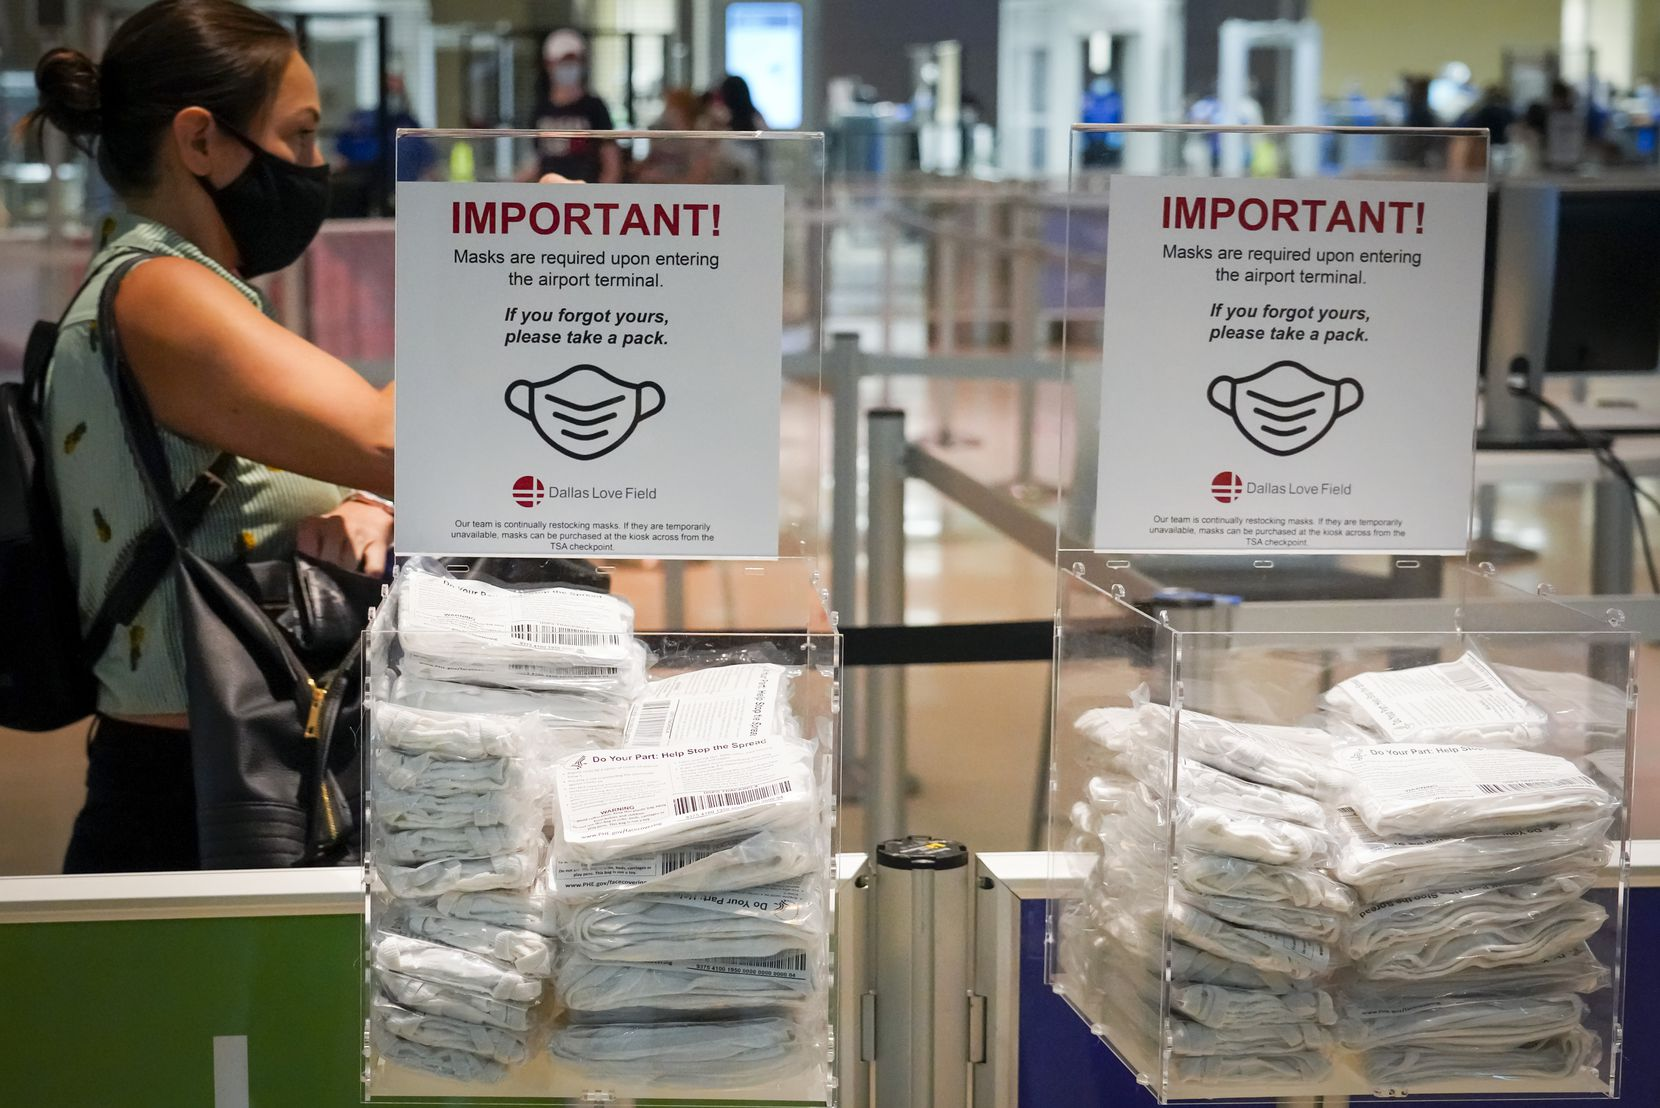 A passenger walked past complimentary face masks while entering the security checkpoint line at Dallas Love Field on Wednesday.